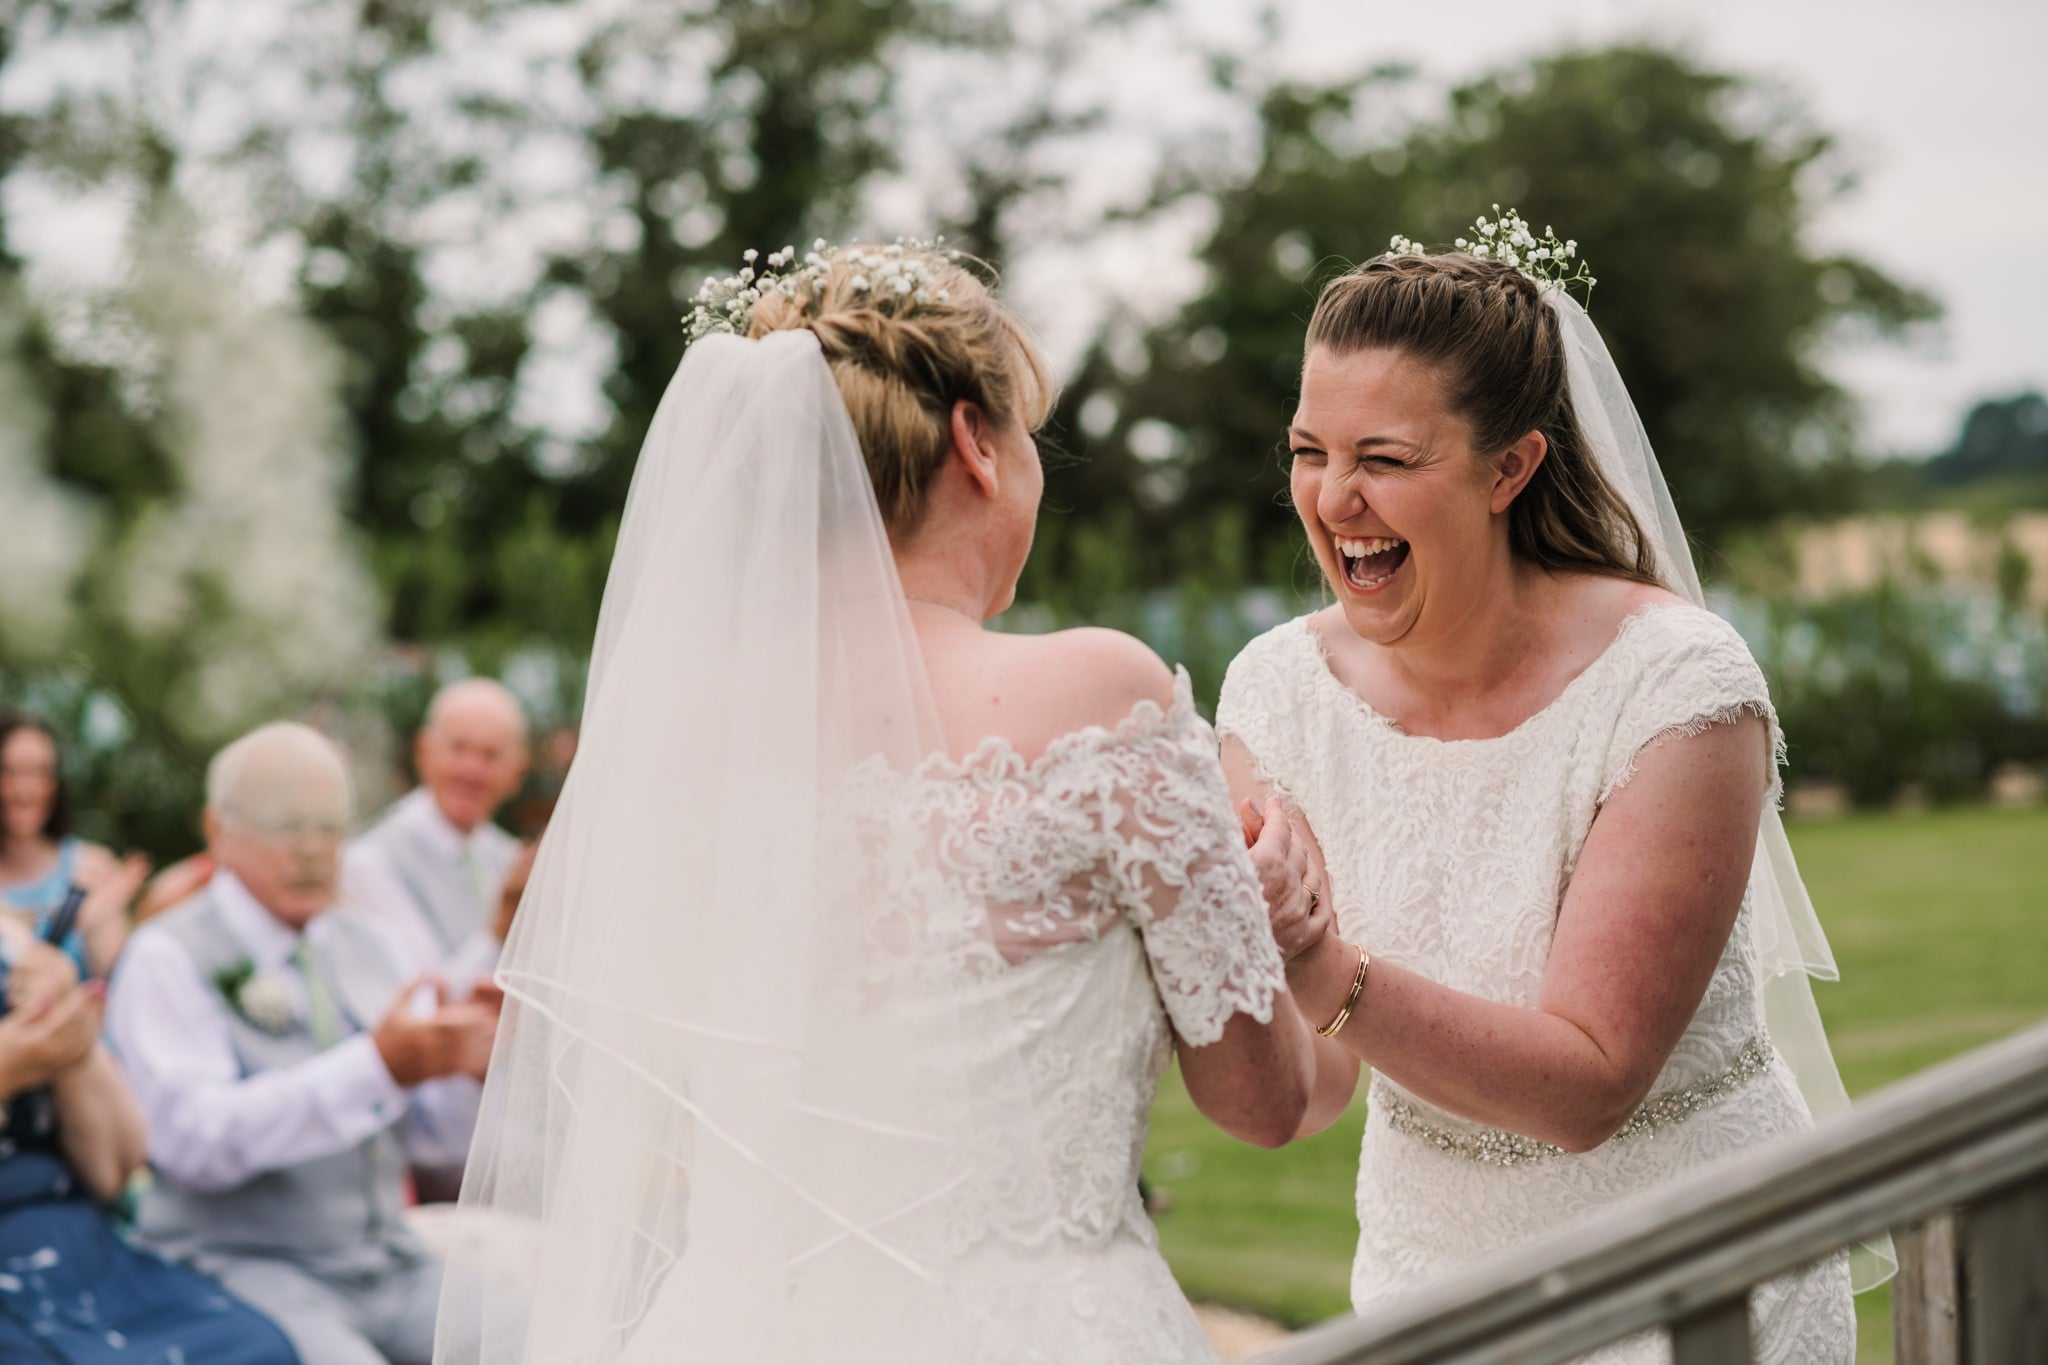 Fun photography at Three Choirs Vineyard wedding